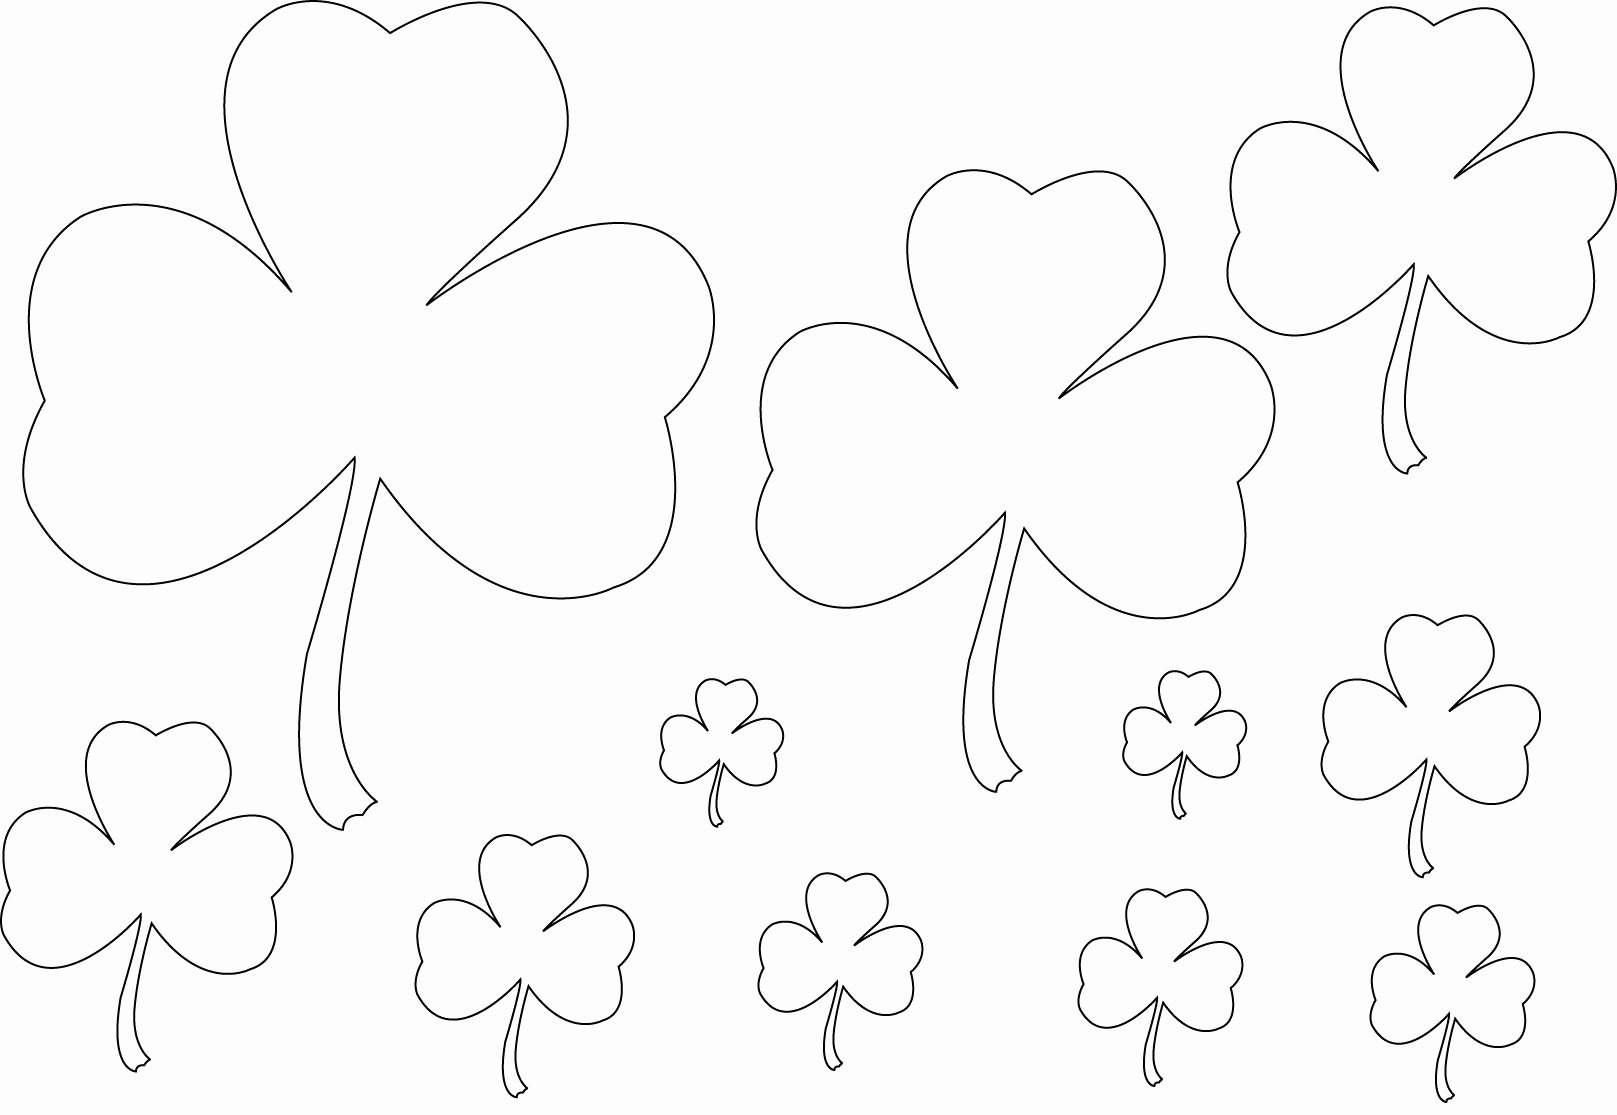 Shamrock Pictures to Print Lovely Free Printable Shamrock Coloring Pages for Kids